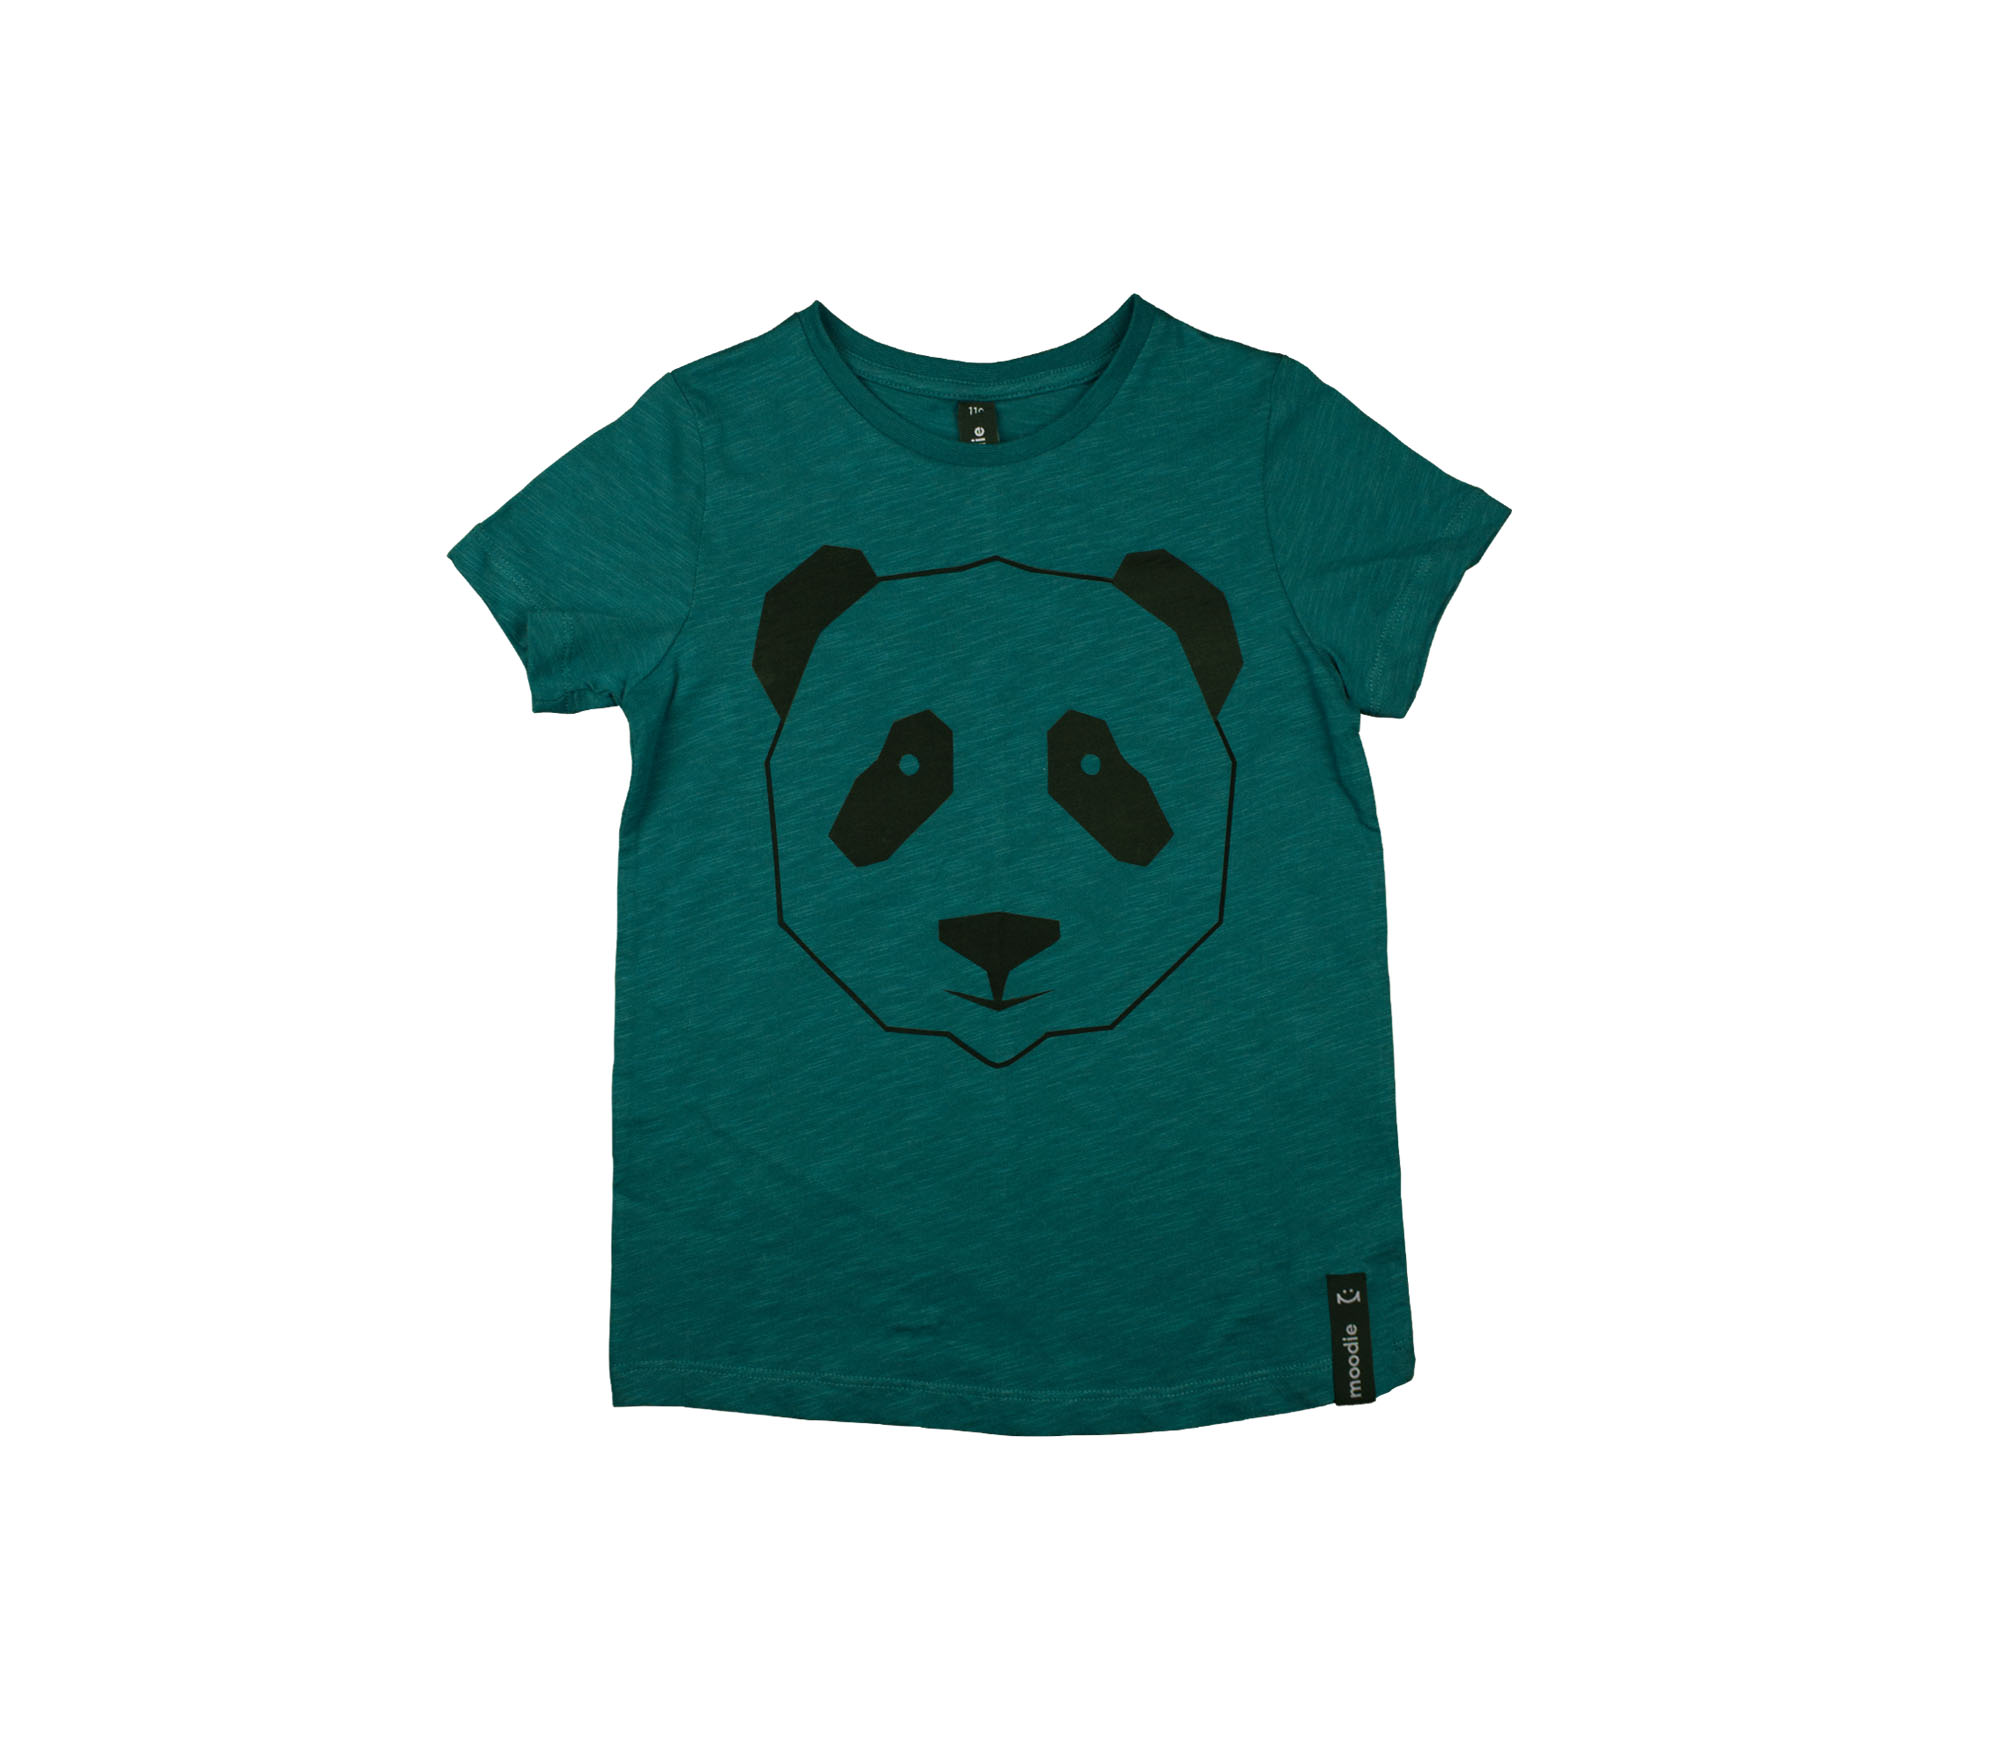 T-shirt barn grön panda- Monky